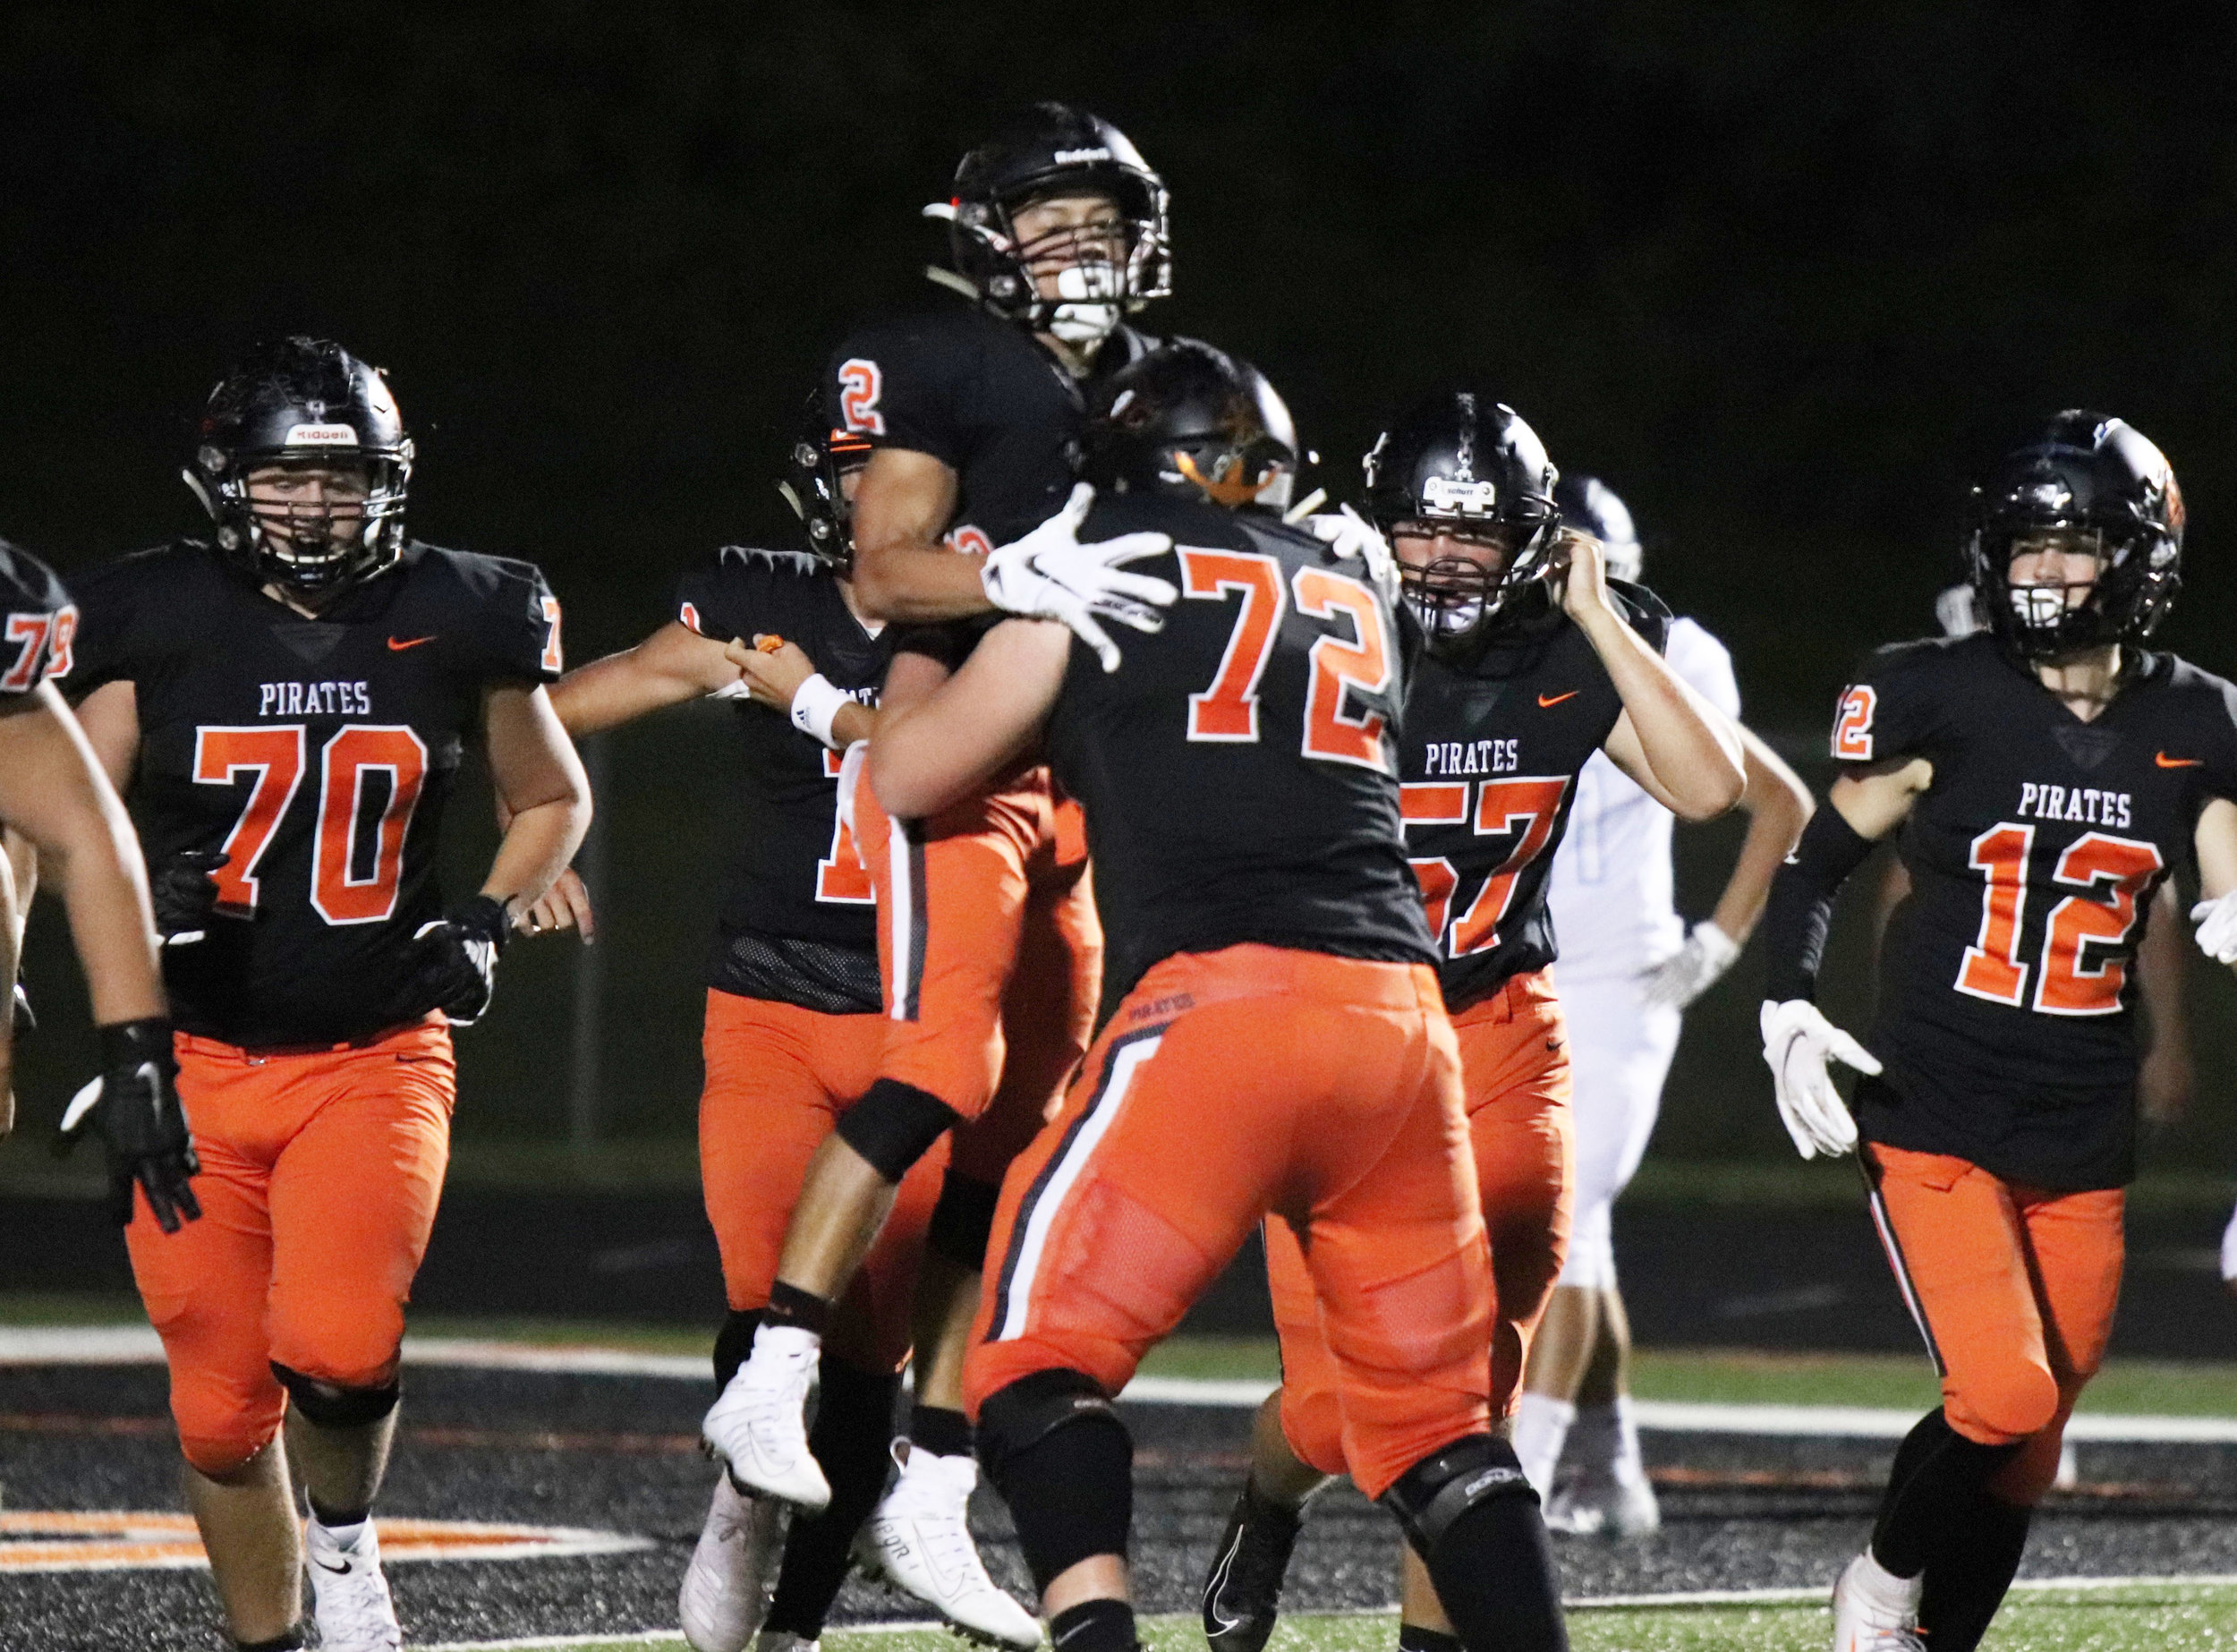 ROSS MARTIN/Special to the Citizen Platte County offensive lineman Trey Butcher (72) lifts running back Trey Phan in the air after he scored his second touchdown against Oak Park during a game on Friday, Aug. 30 at Pirate Stadium in Platte City.